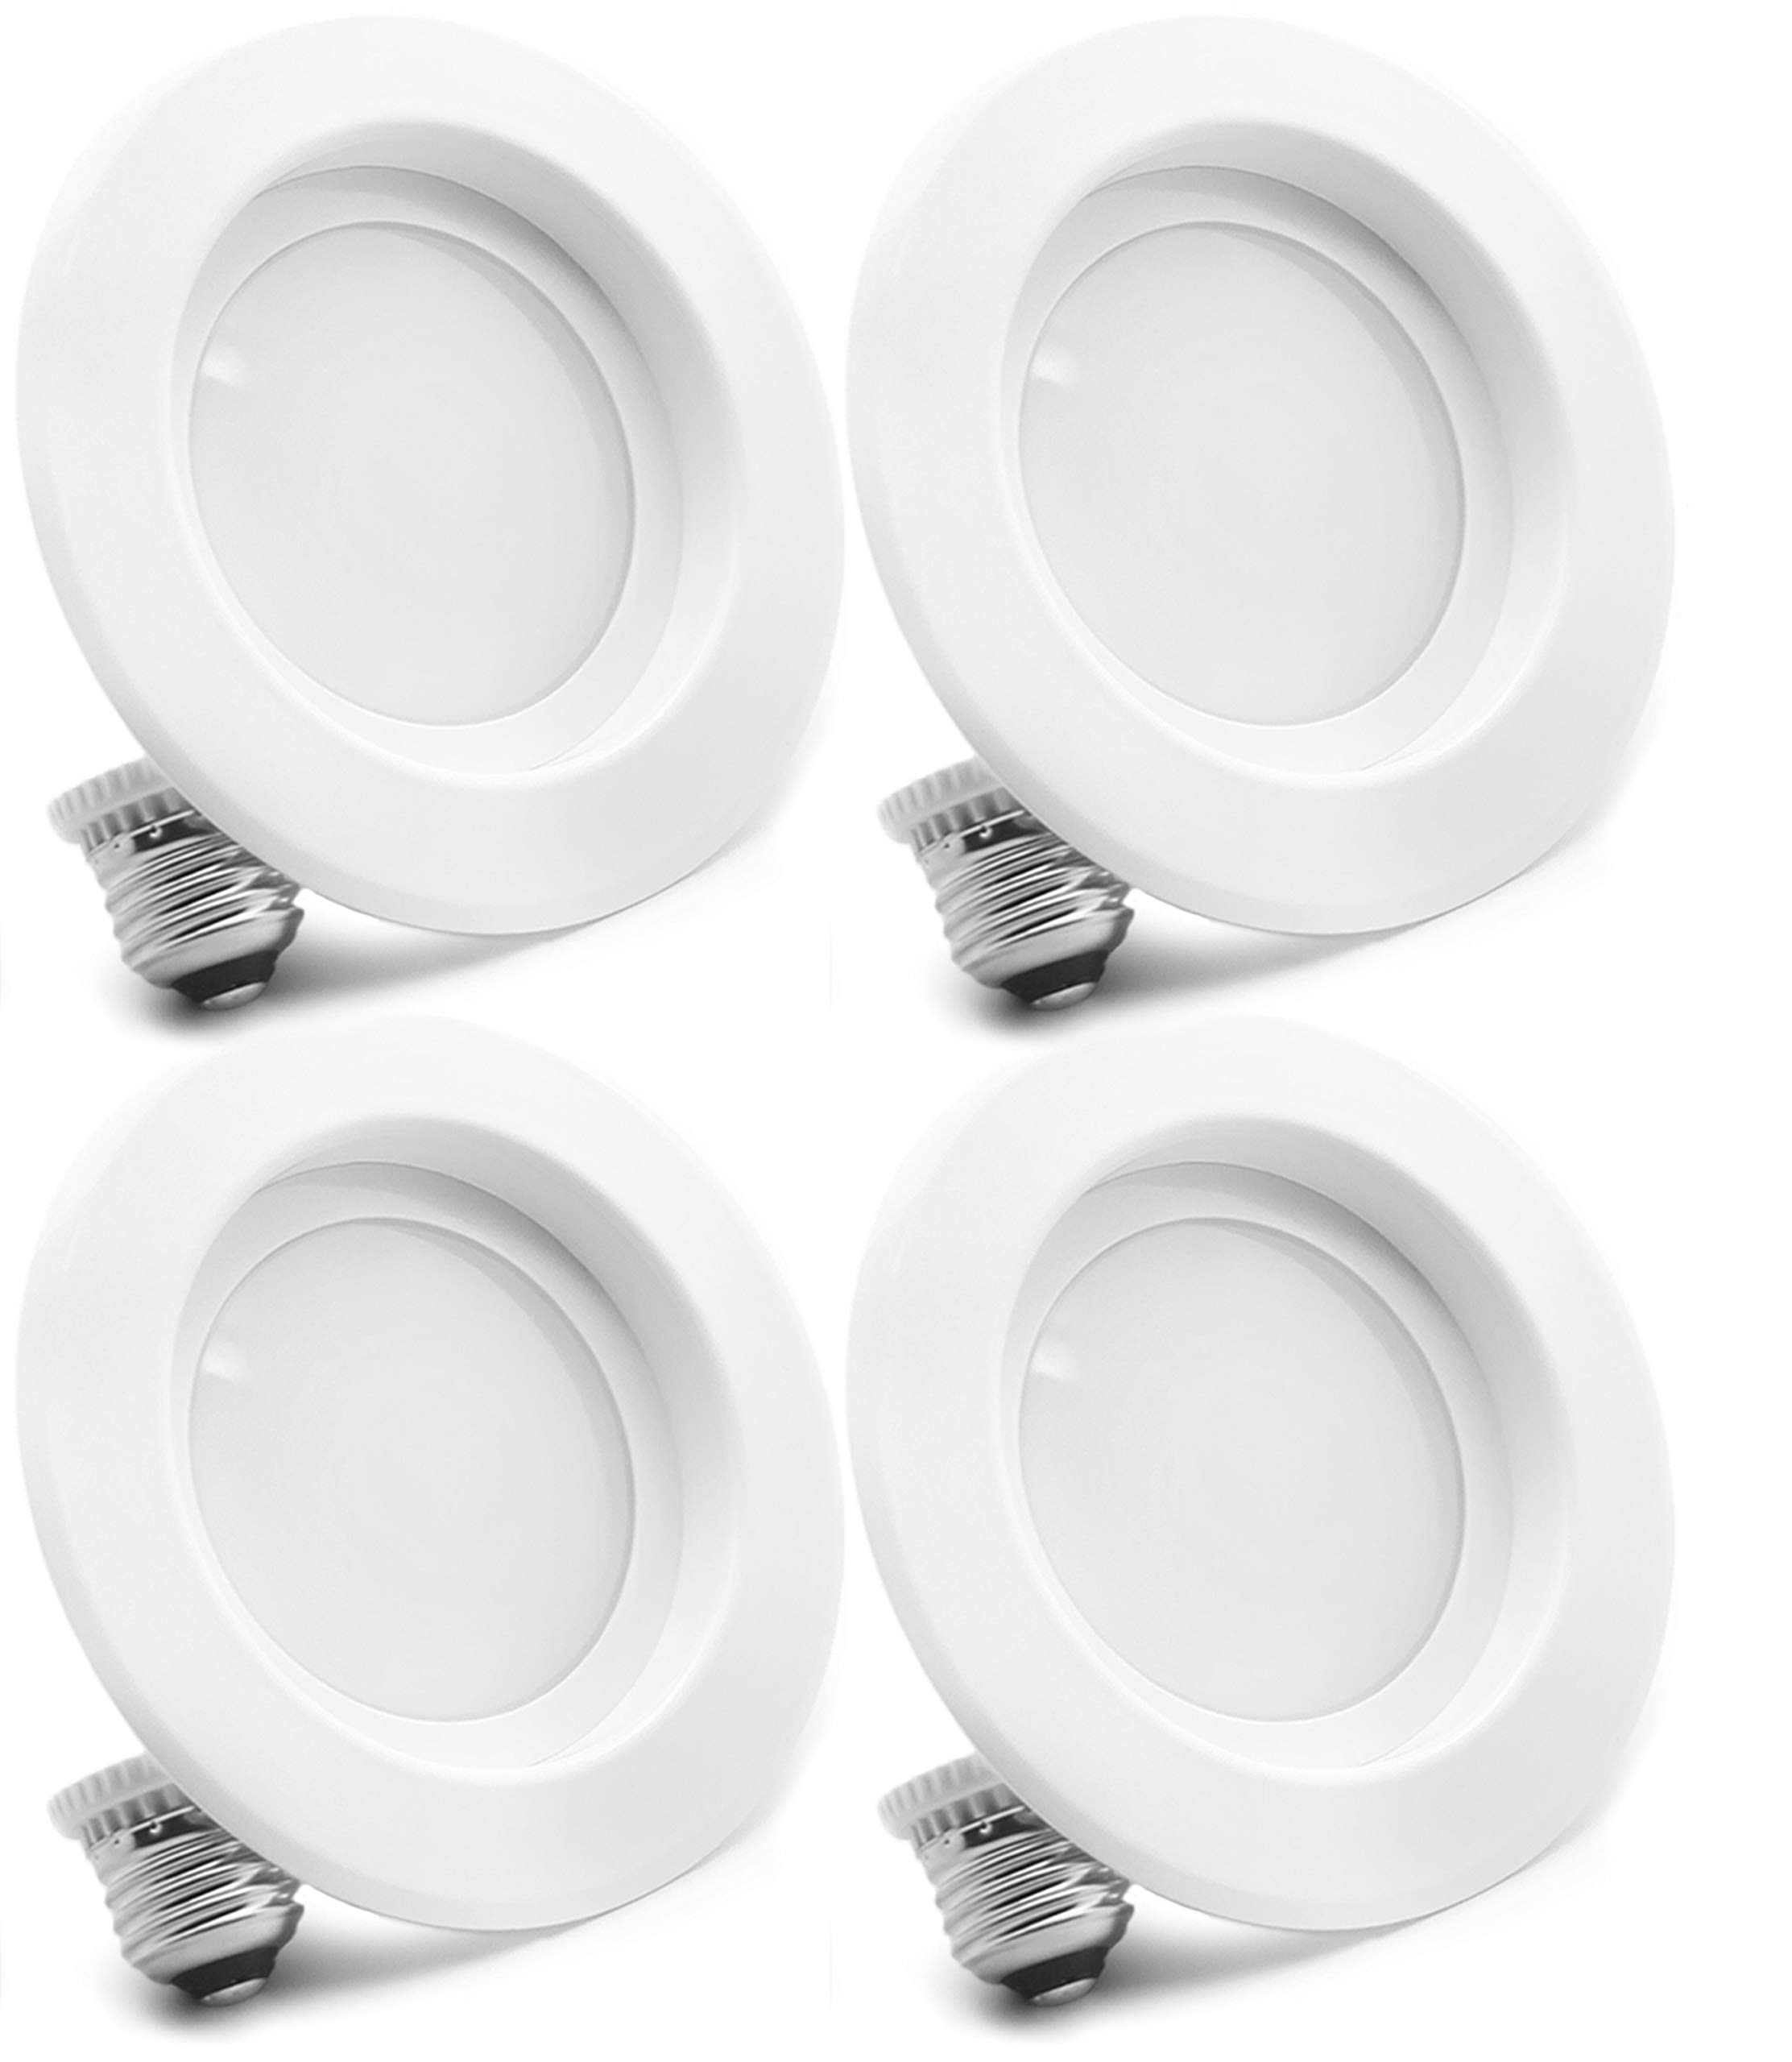 "4-Pack Bioluz LED 6"" BRIGHTEST RETROFIT (120 Watt Replacement) WARM WHITE UL-listed Dimmable Retrofit LED Recessed Lighting Fixture - 2700K Warm White LED Ceiling Light - 1200 Lumen Recessed Downlight"